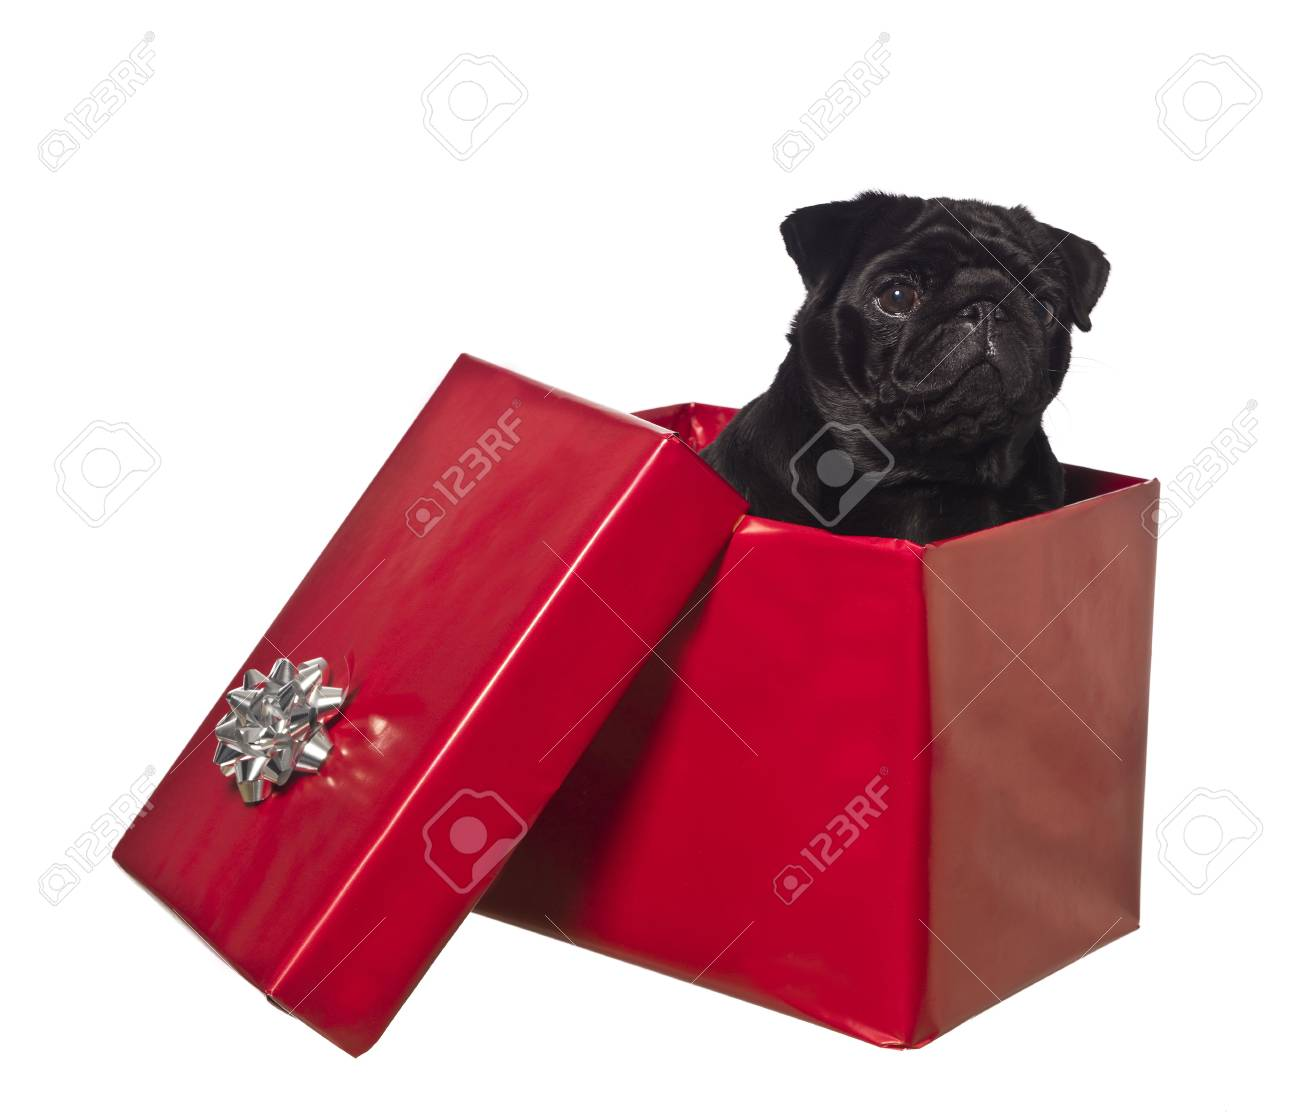 Dog in a gift box isolated on white Stock Photo - 5664003